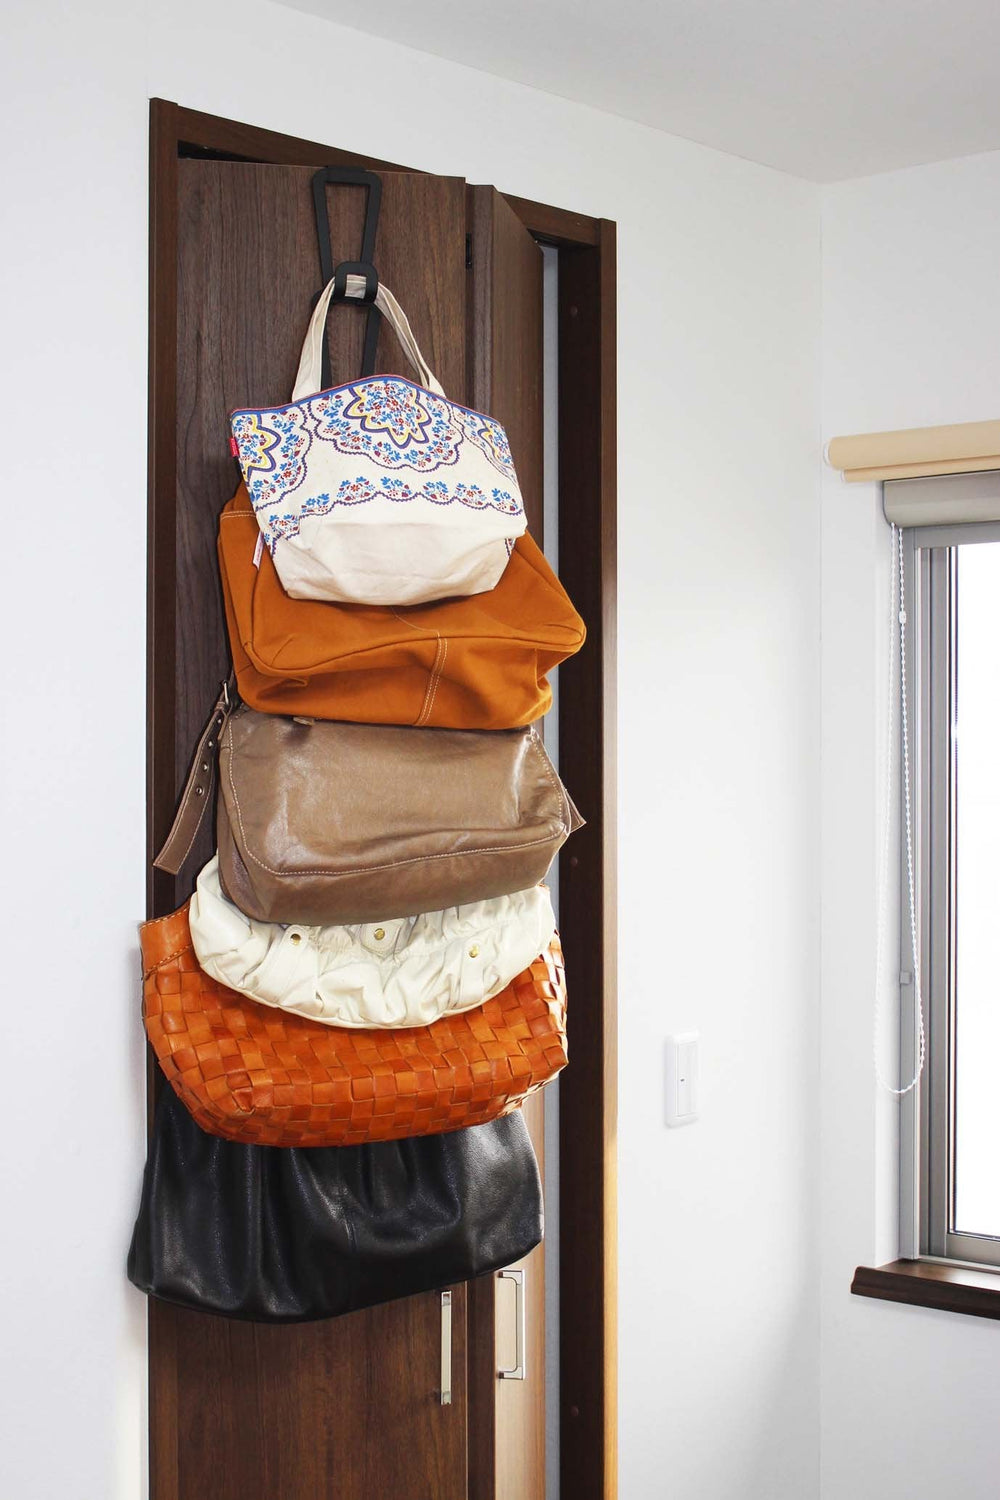 Yamazaki's Black chain link bag hanger displaying bags hung on a wooden closet door.